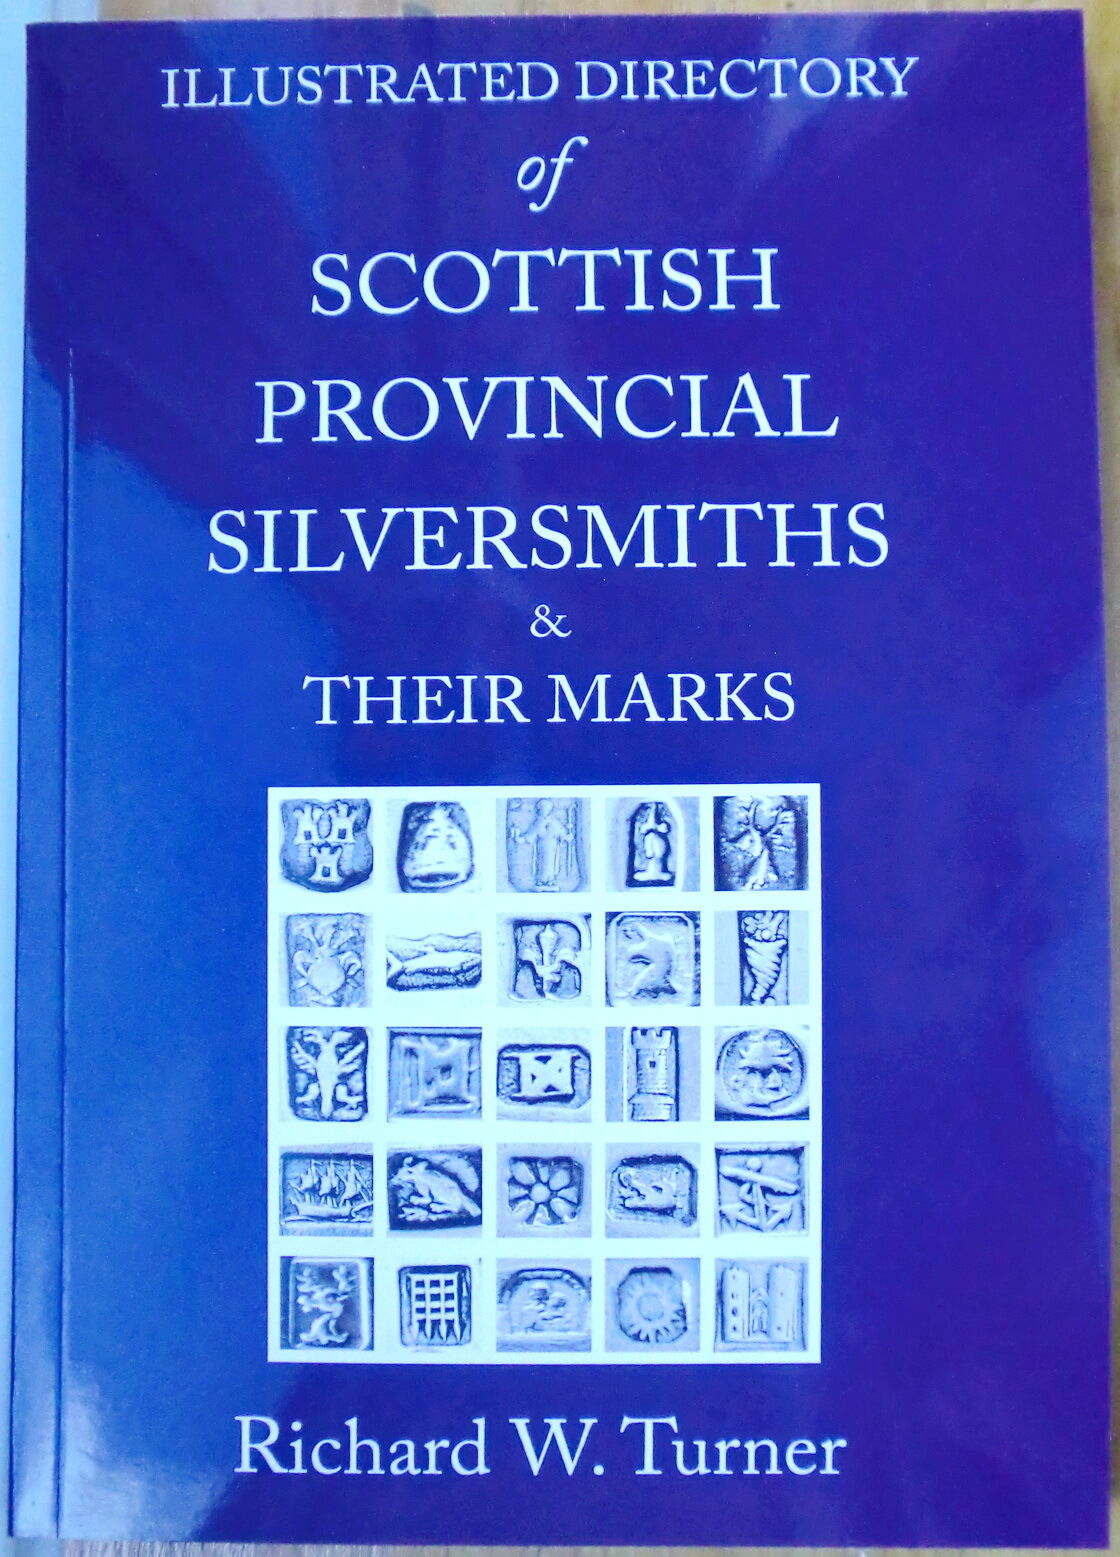 Illustrated Directory of Scottish Provincial Silversmiths /& Their Marks